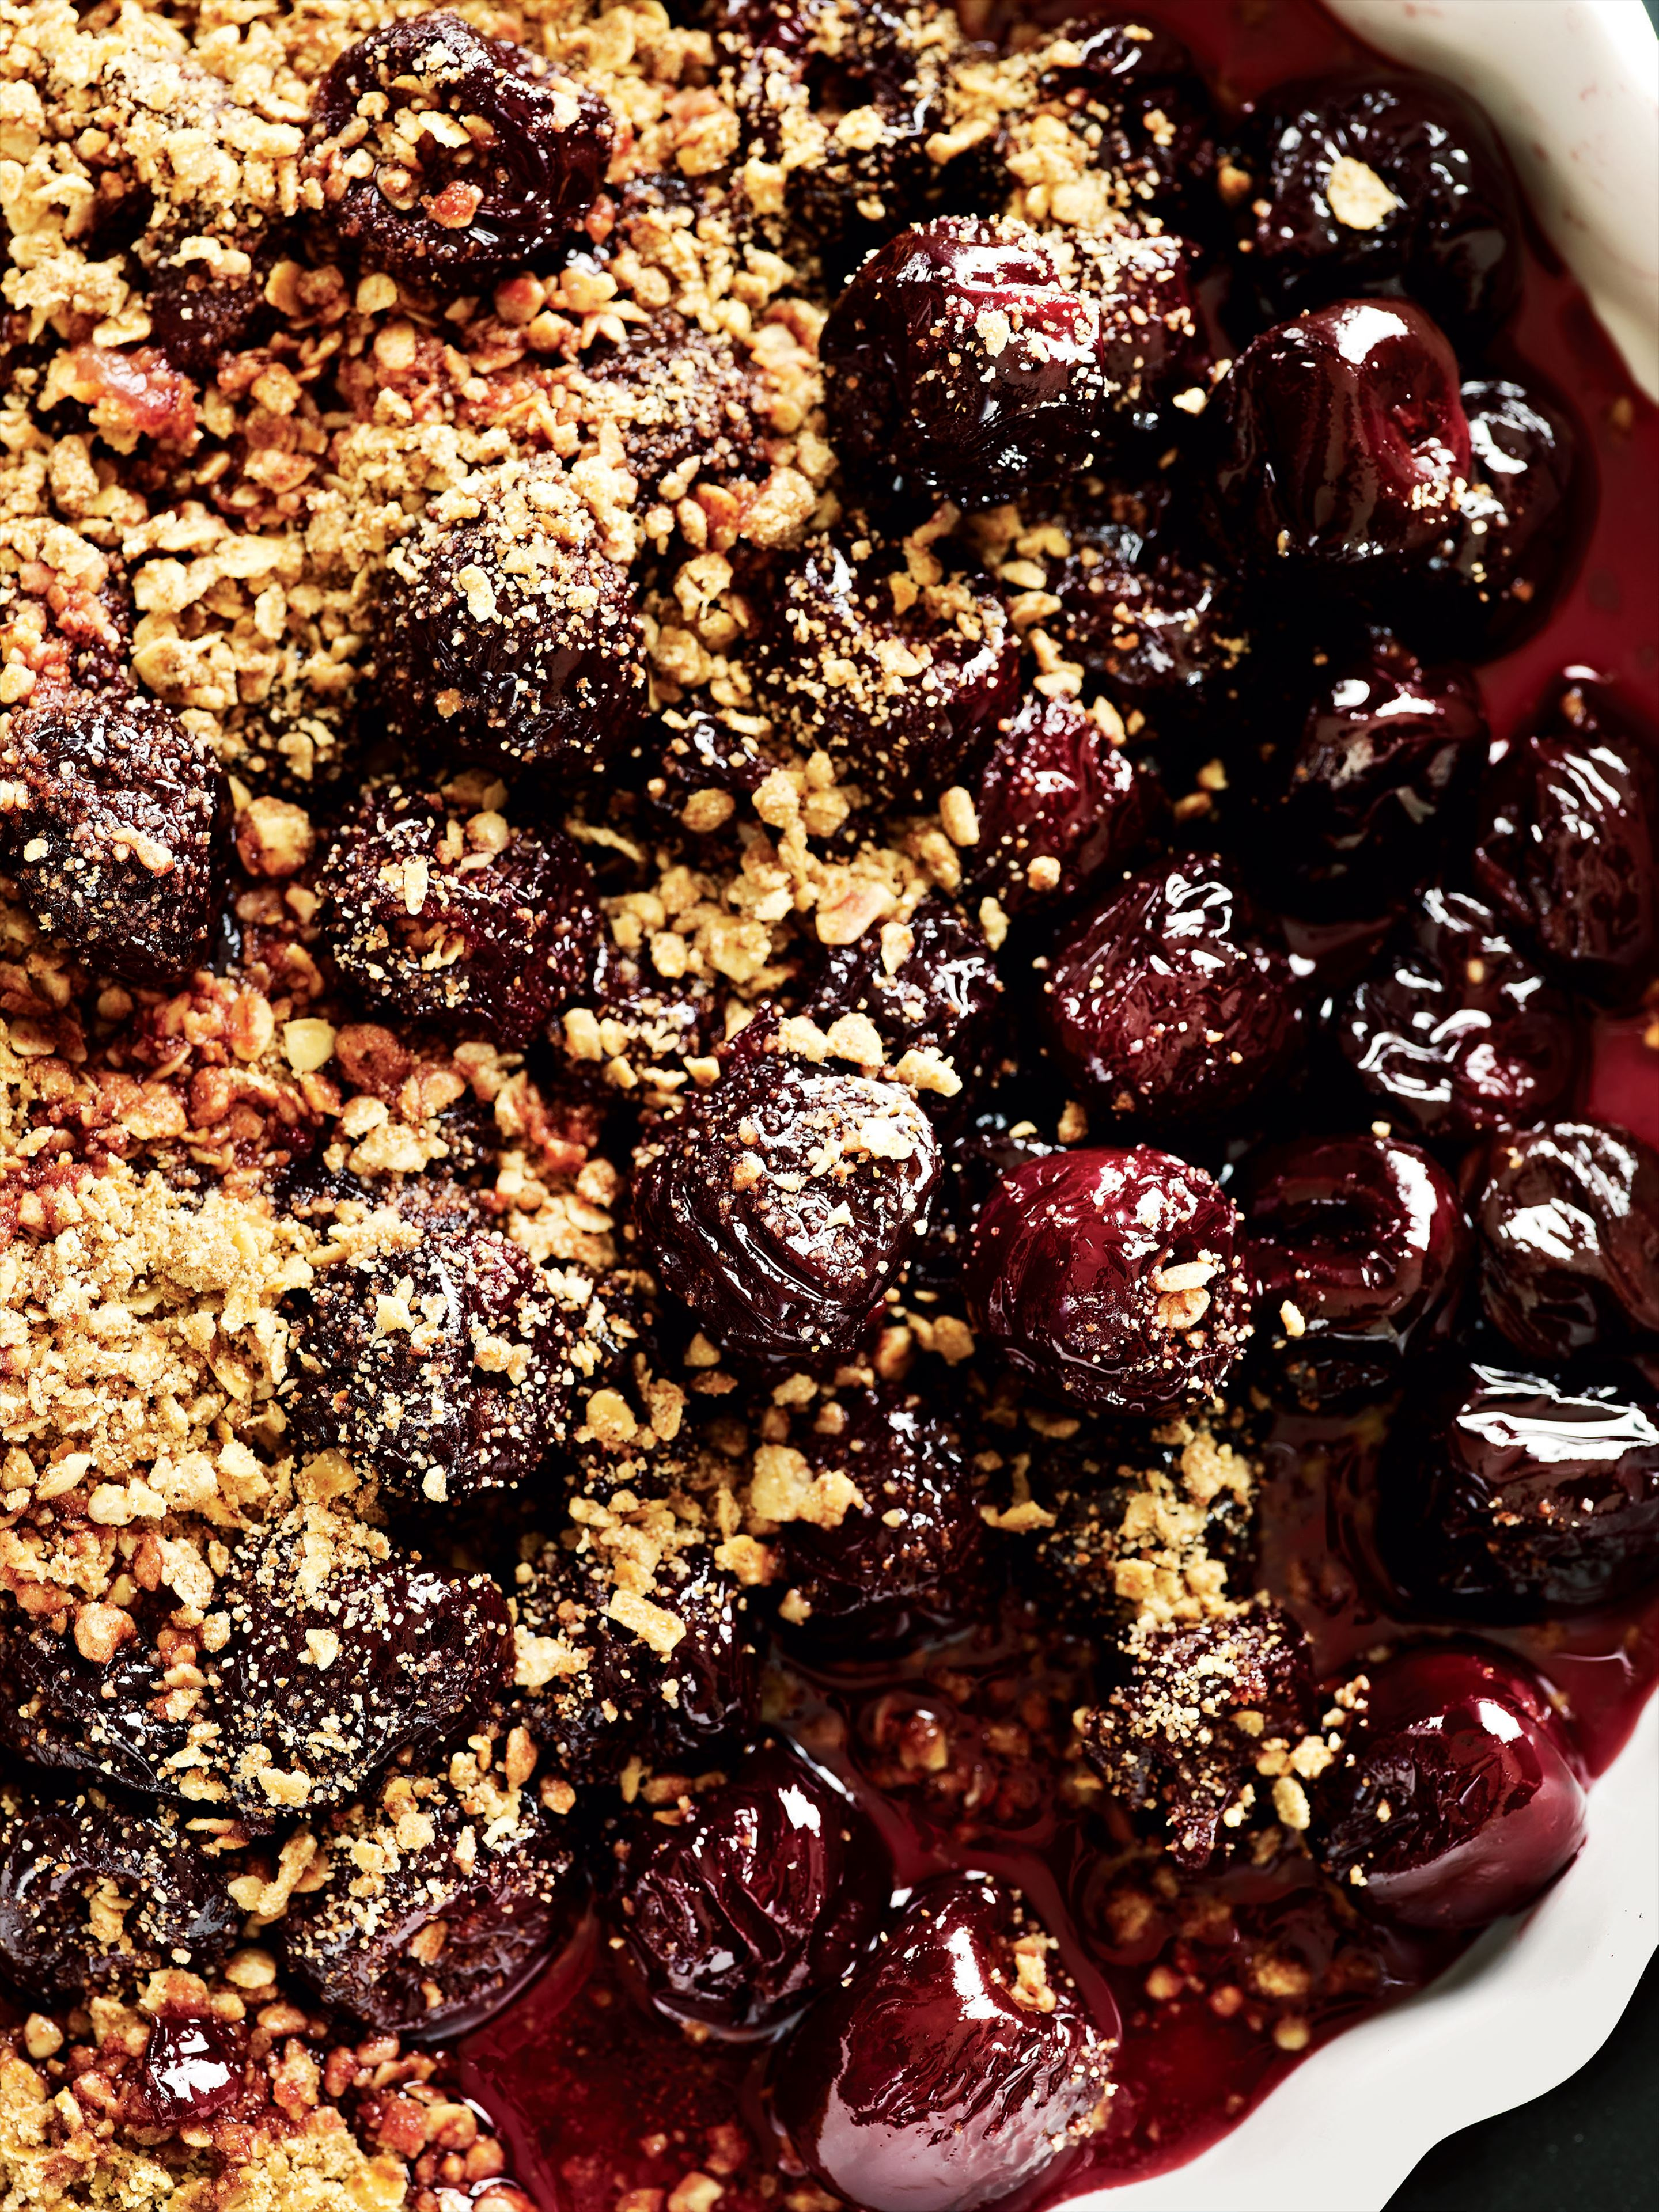 Good-night spiced cherry crumble